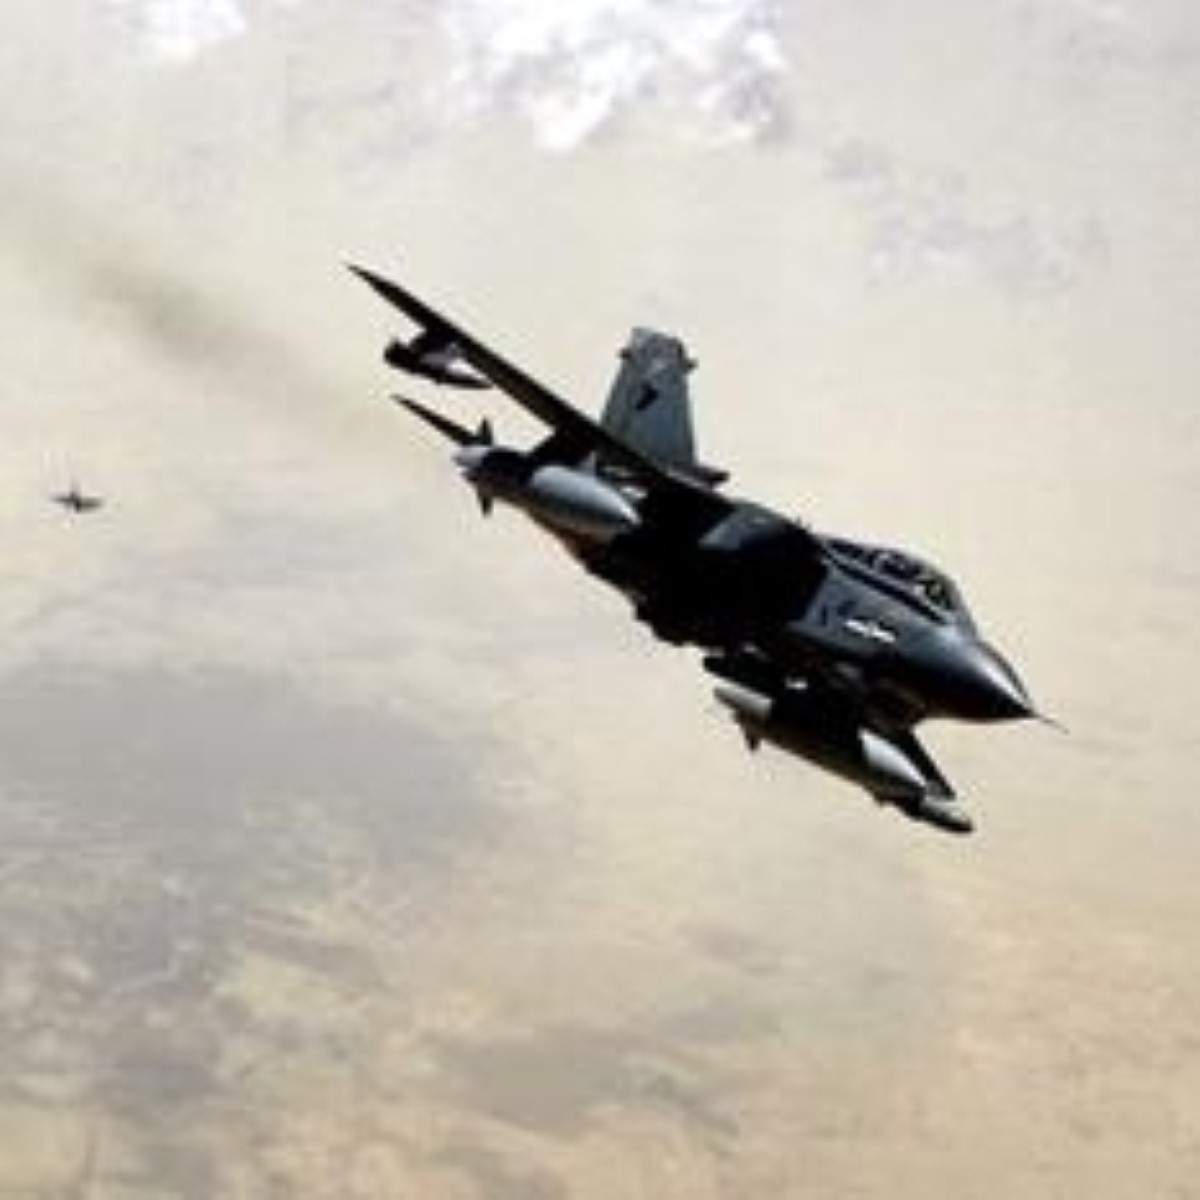 Four more Tornados will fly over Libyan airspace